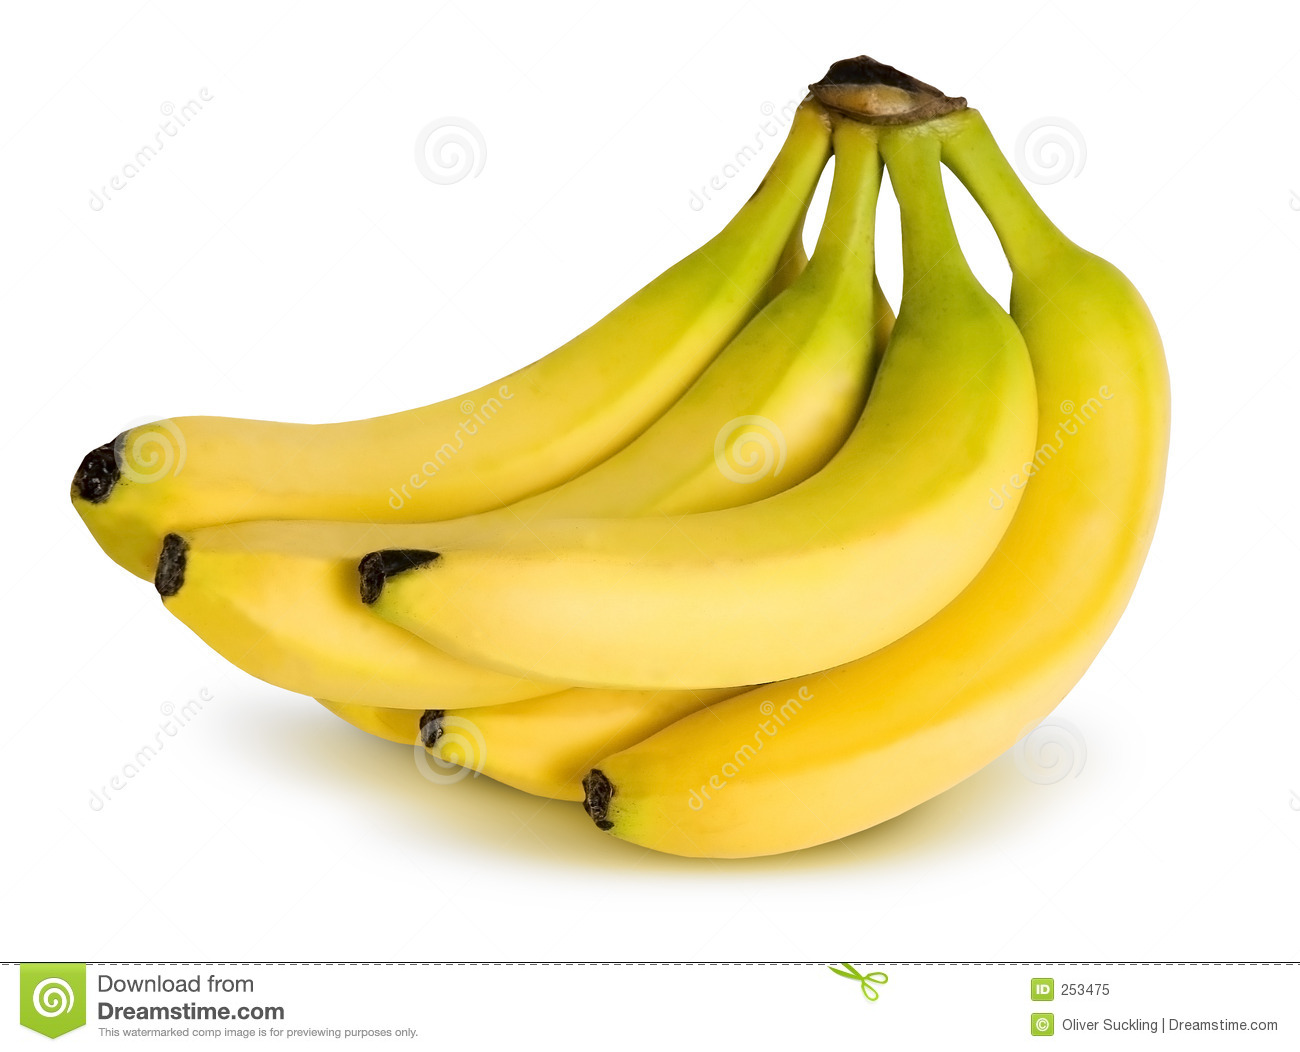 Bunch of free download. Bananas clipart bunches